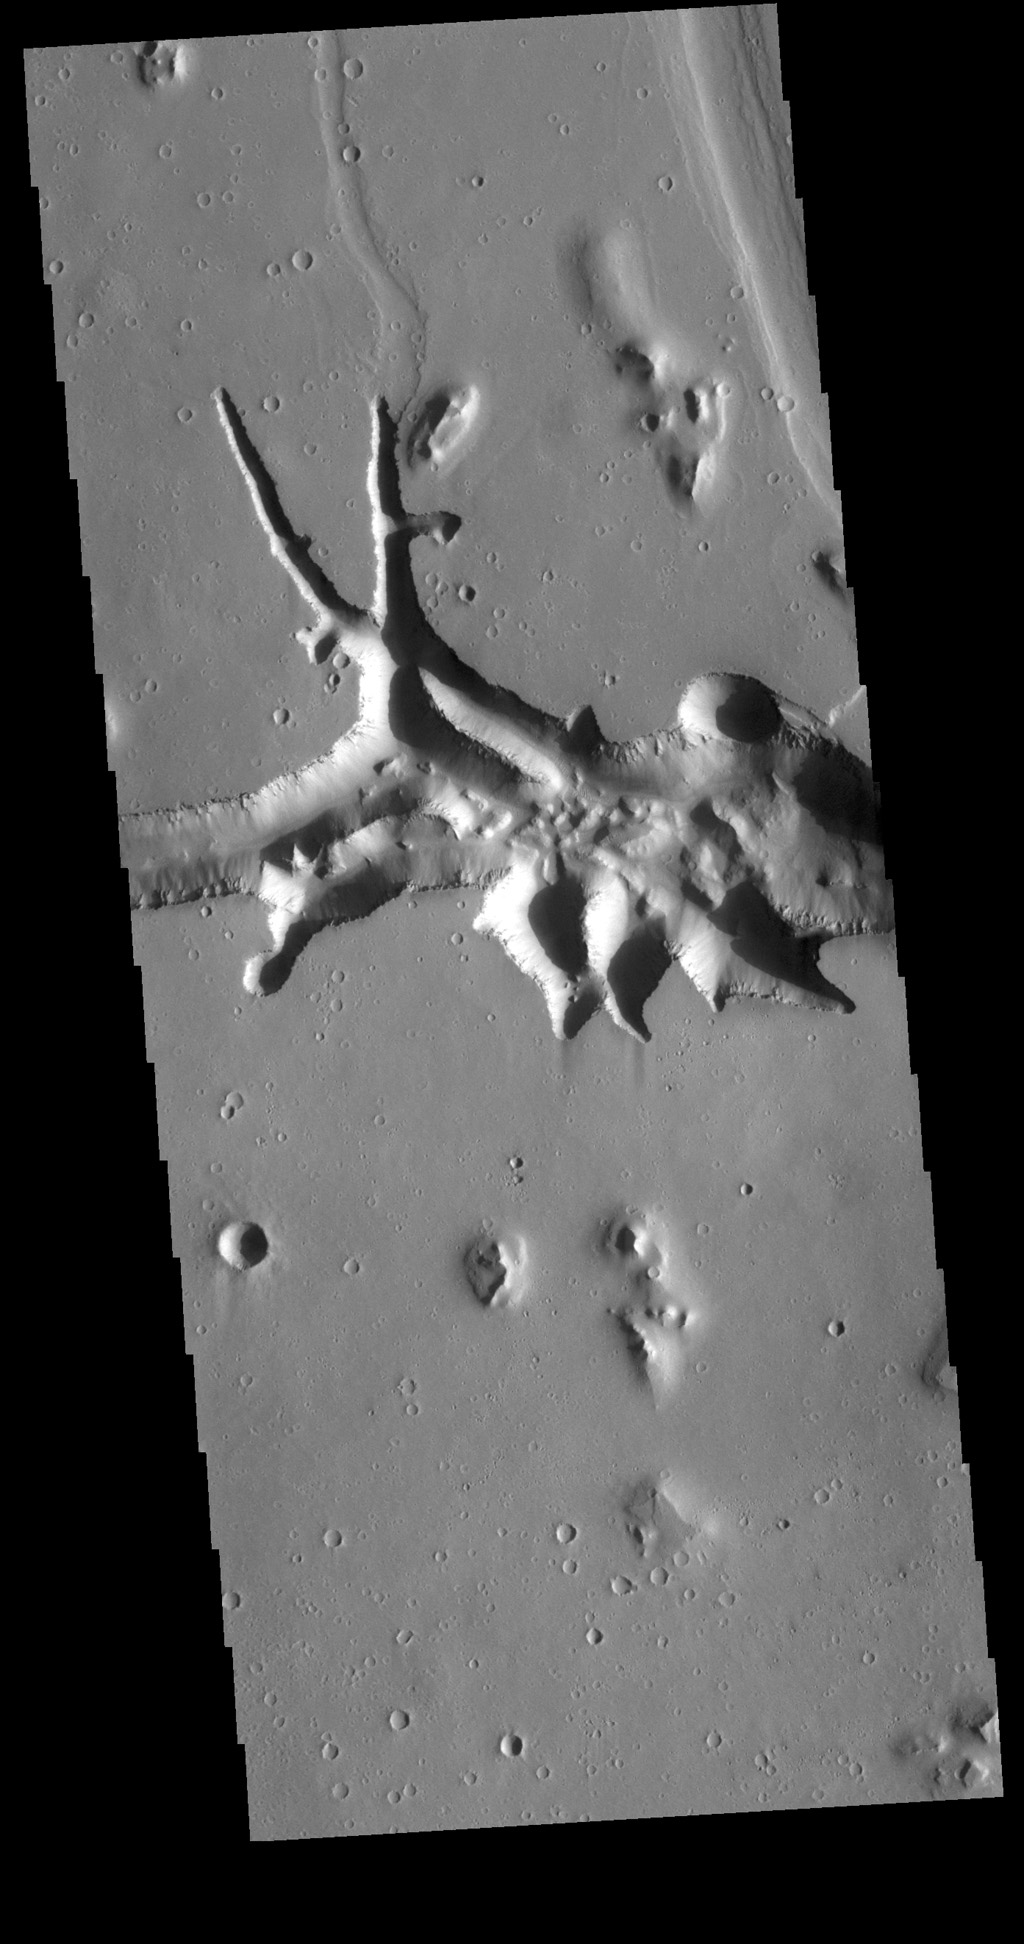 This image from NASA's Mars Odyssey shows the eastern end of Hephaestus Fossae, which is a channel system in Utopia Planitia near Elysium Mons.